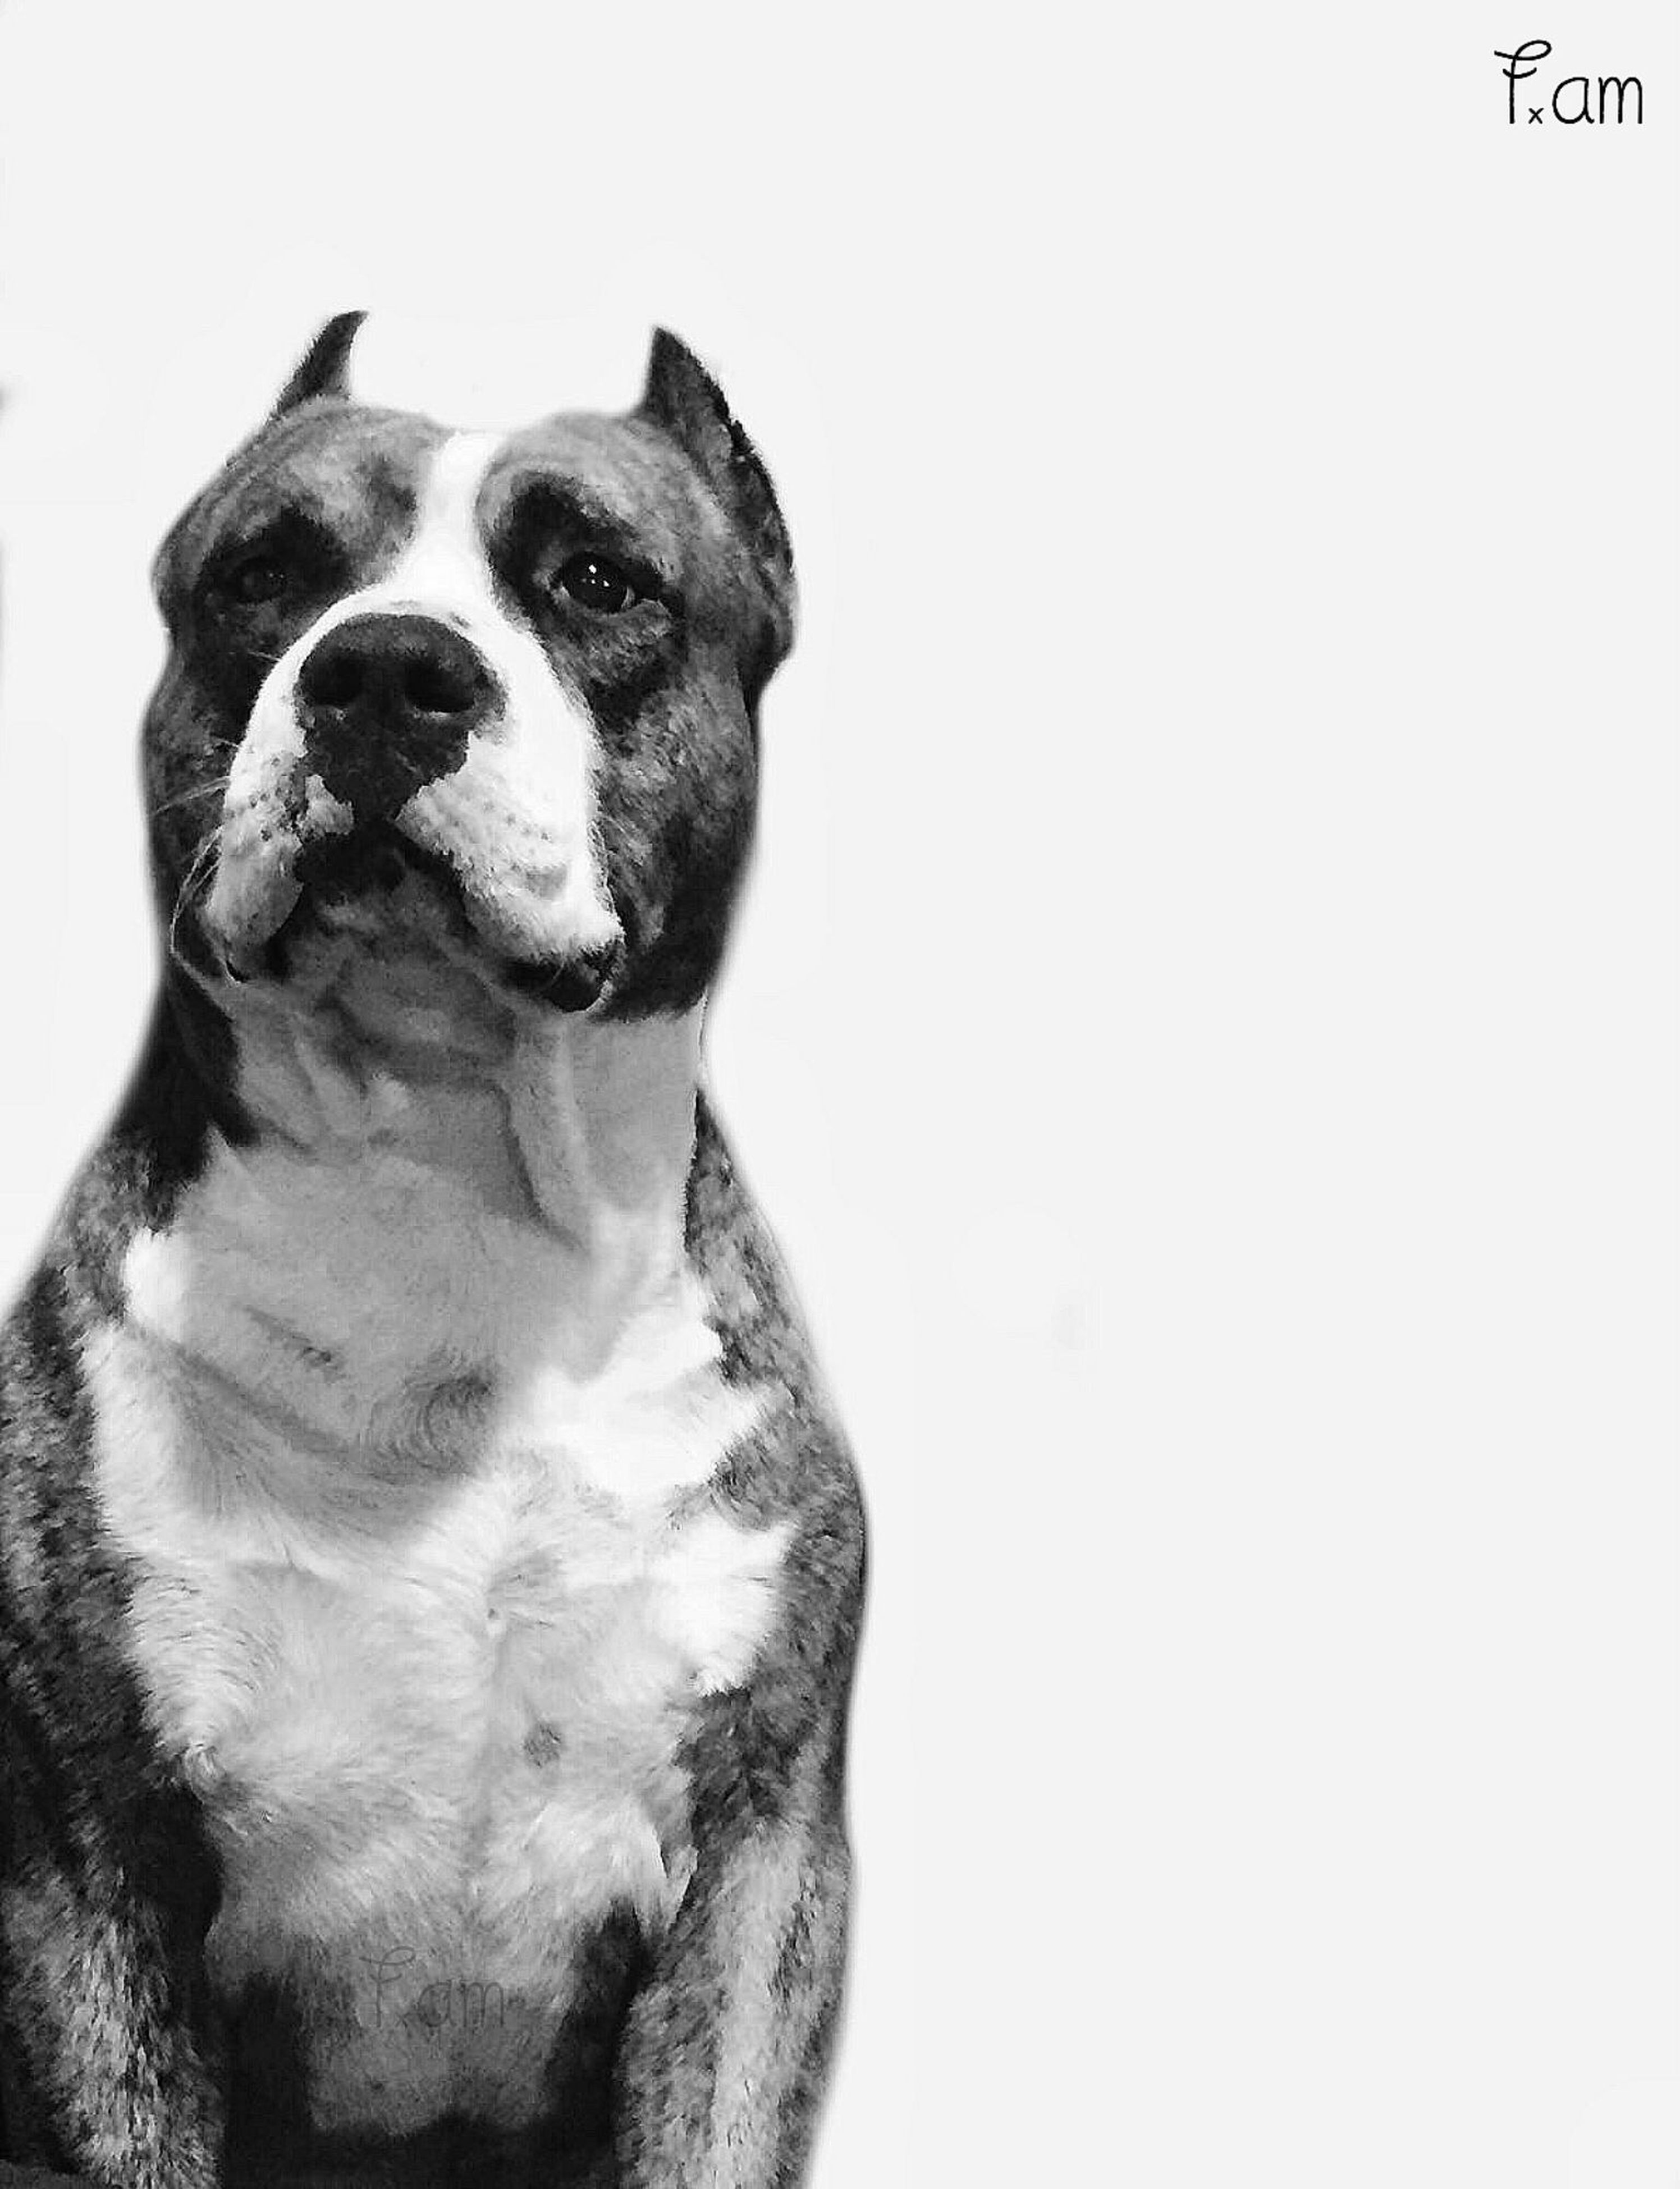 copy space, one animal, animal themes, pets, clear sky, domestic animals, dog, studio shot, white background, mammal, no people, close-up, nature, white color, day, outdoors, full length, animal head, wall - building feature, sky